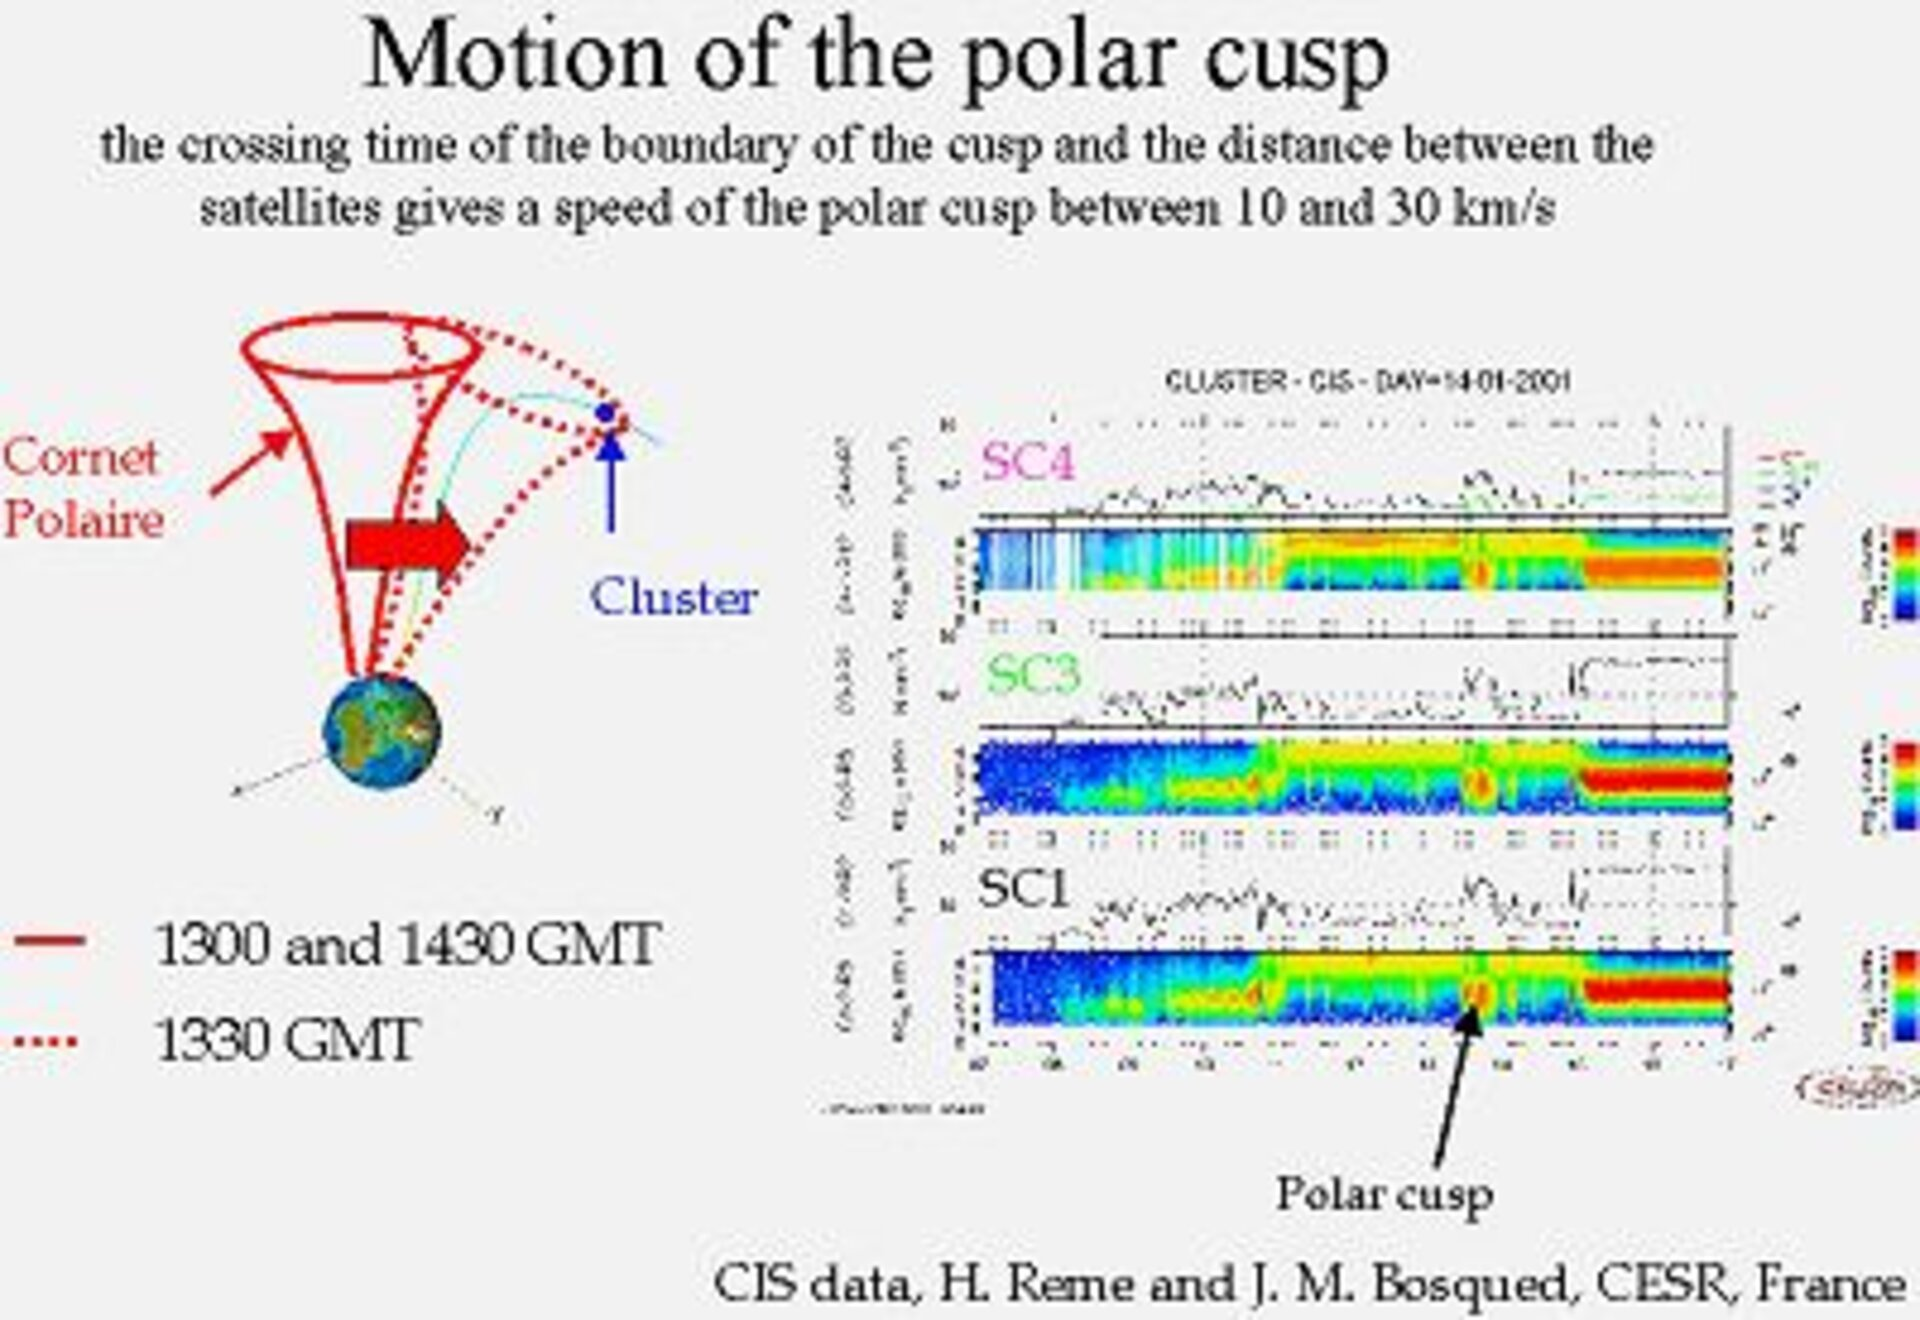 Motion of the polar cusp